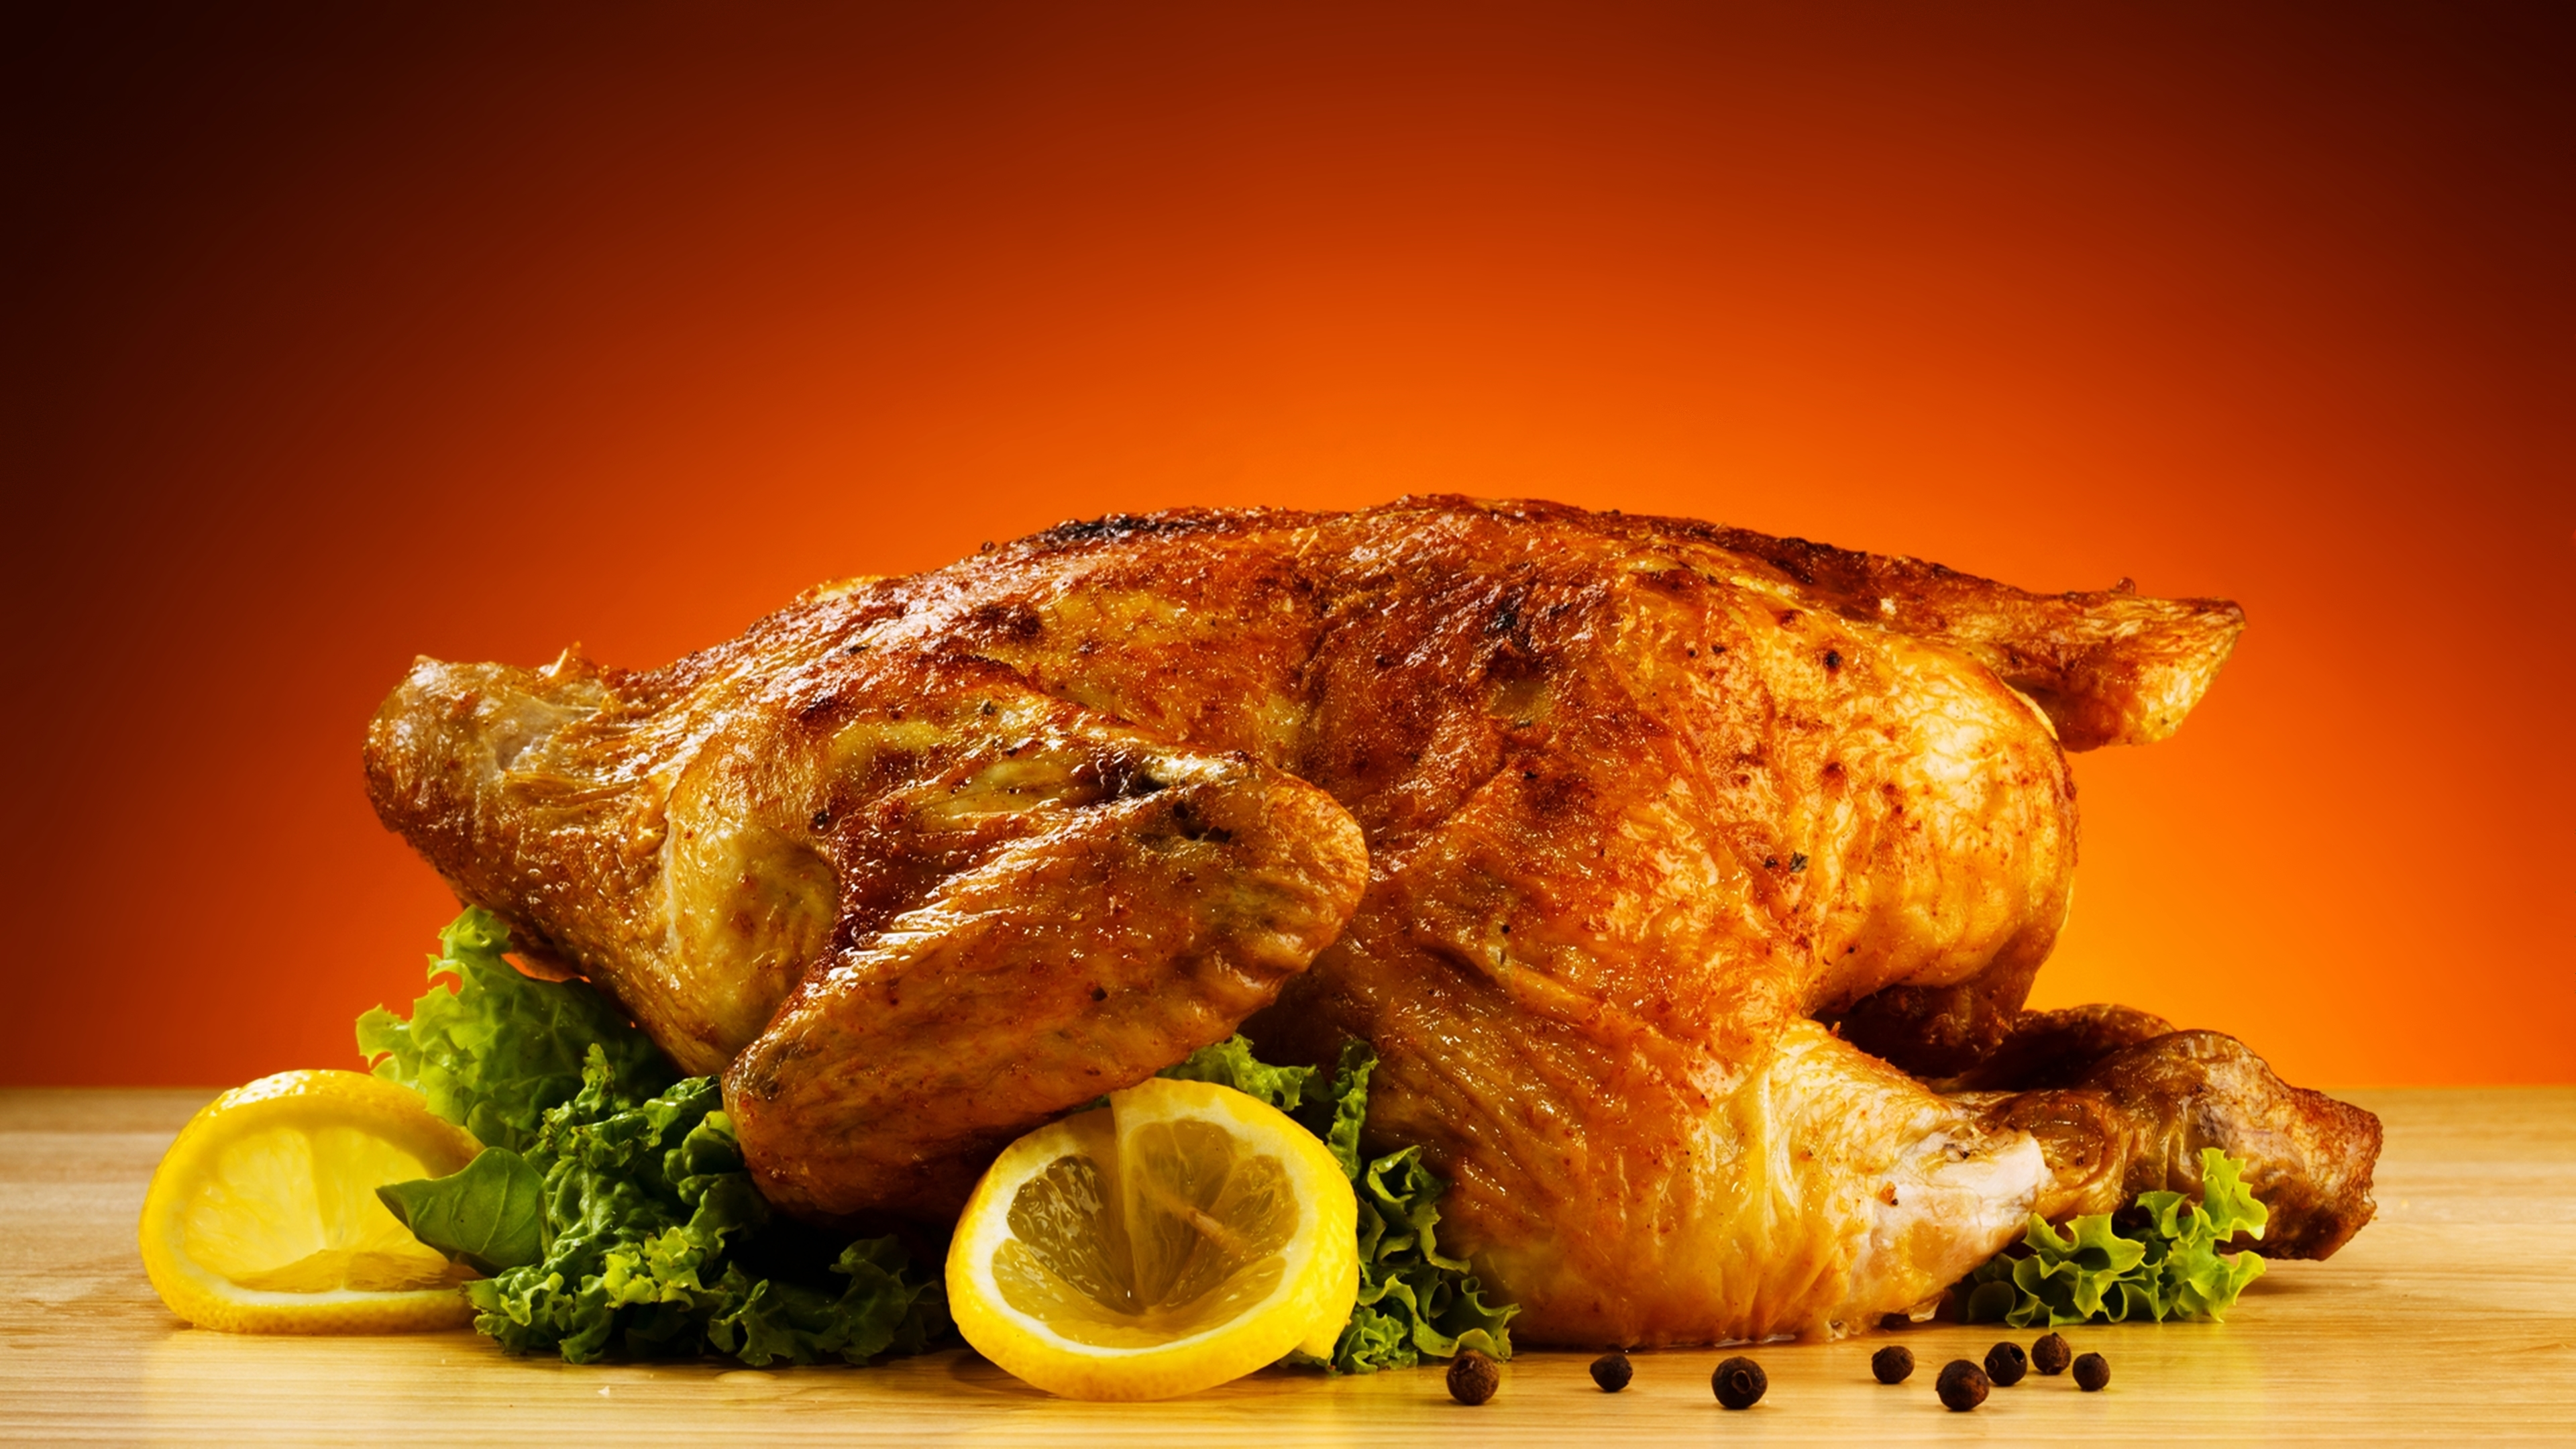 Roast Chicken 4k Ultra Fondo De Pantalla Hd Fondo De